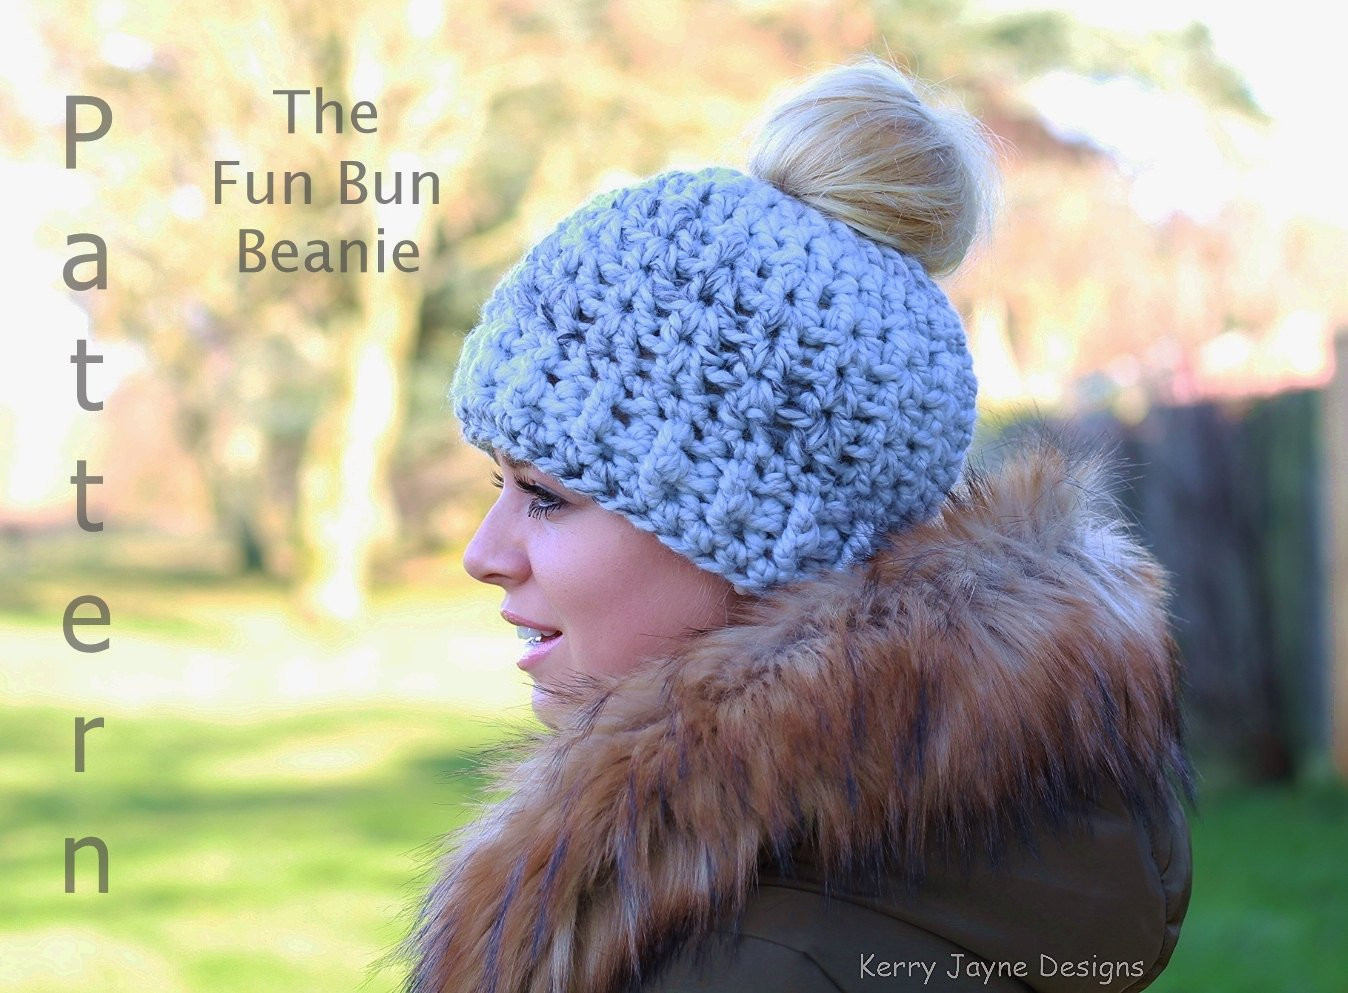 Inspirational Crochet Hat Pattern Fun Messy Bun Beanie Crochet Pattern Messy Bun Beanie Crochet Pattern Of Charming 42 Pics Bun Beanie Crochet Pattern